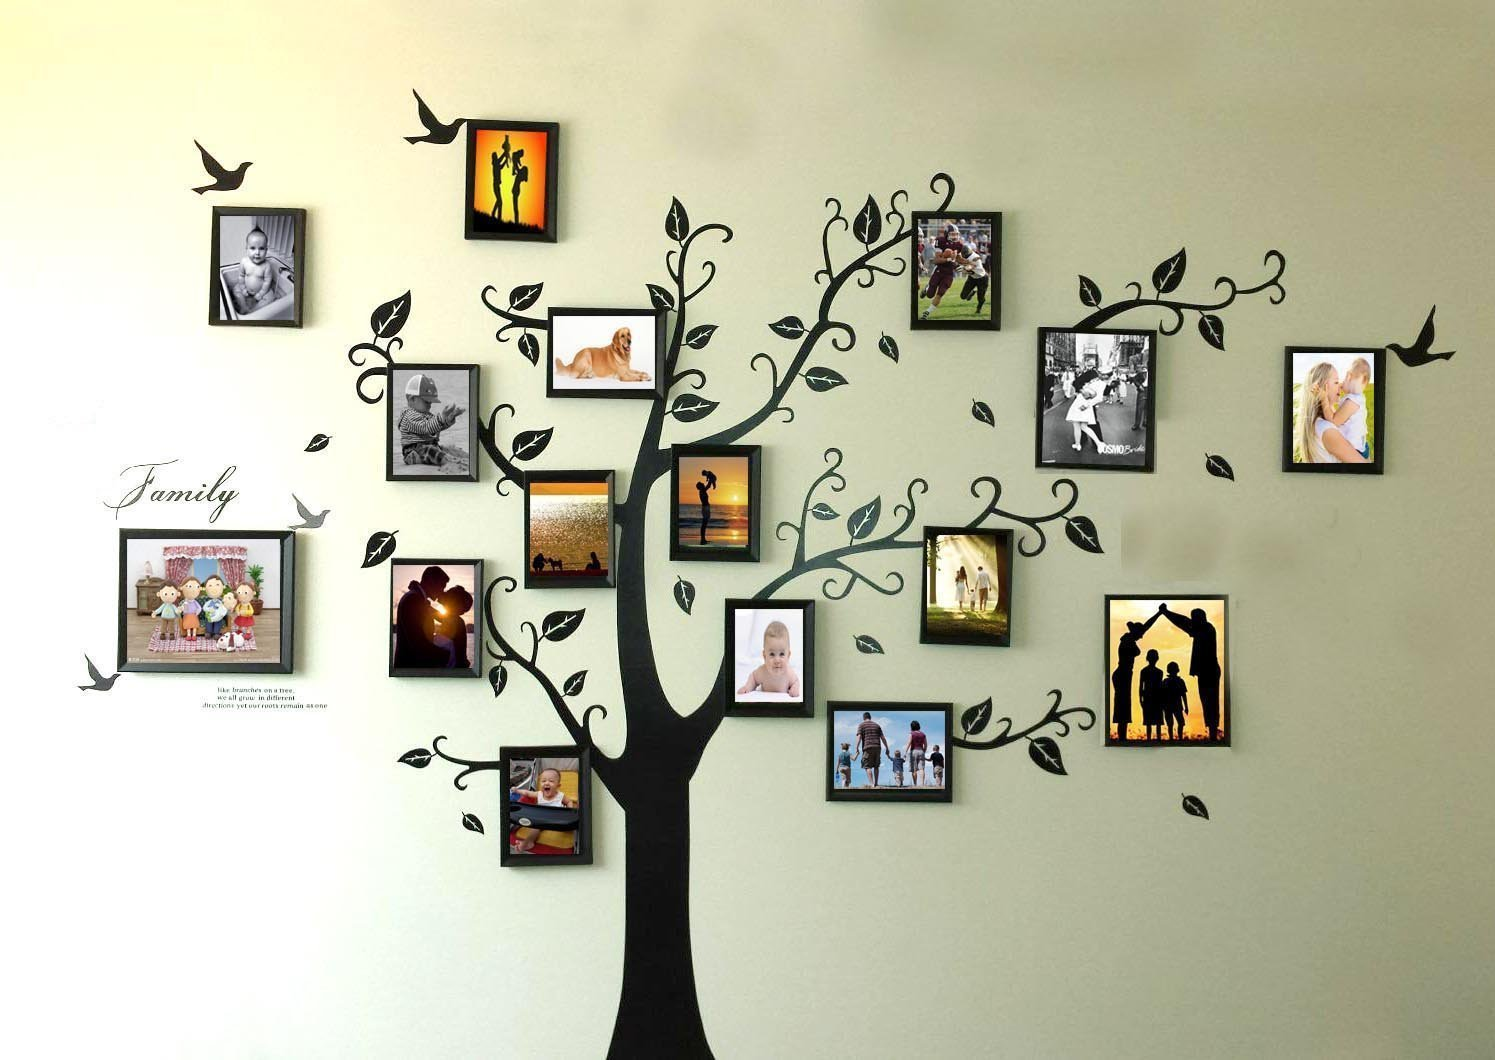 Rainbow Fox Large Black Photo Frames 16 Frames Memory Tree Photo Tree Wall Vinly Decal Decor Sticker Removable Wall Decal for Living Room (180cm250cm)